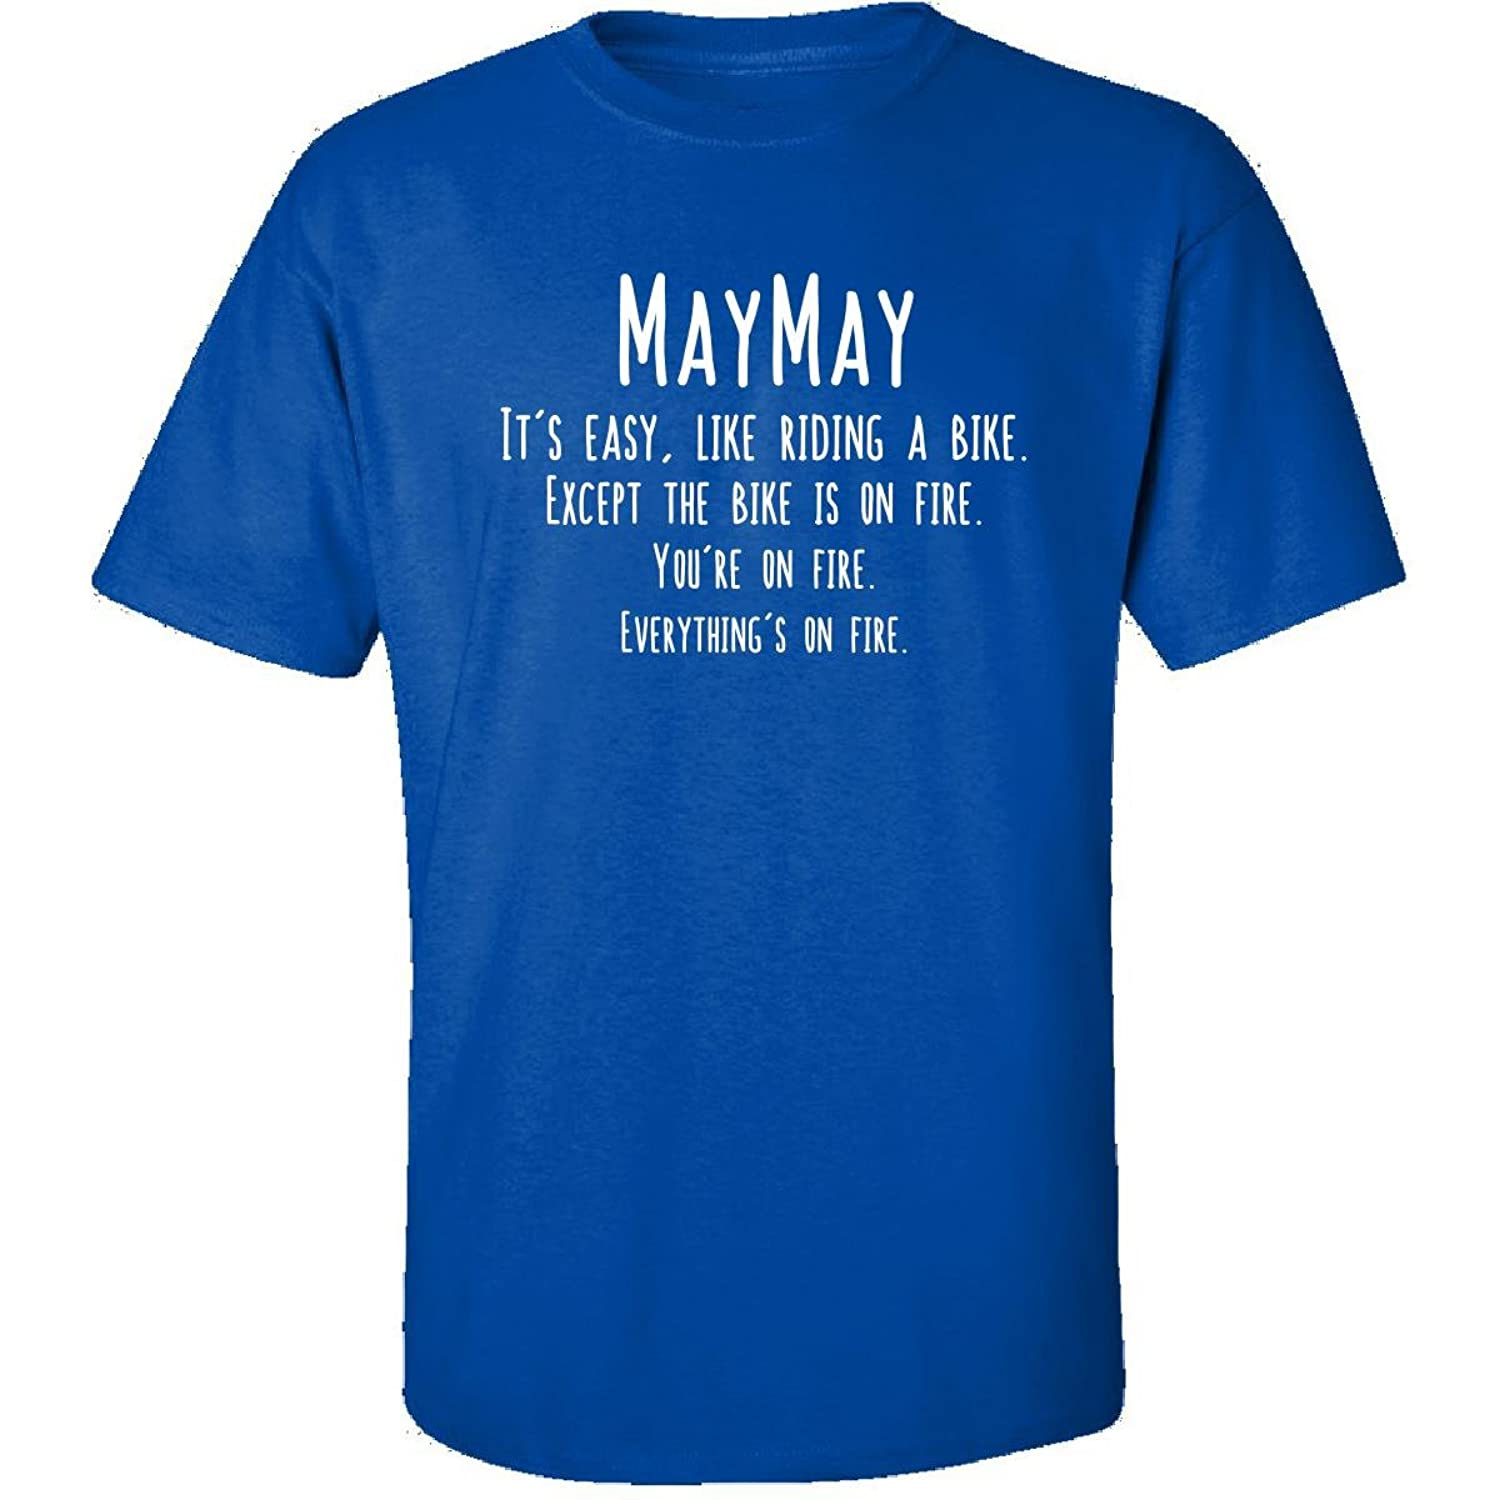 Maymay Is Easy Like Riding Bike On Fire Funny Job - Adult Shirt